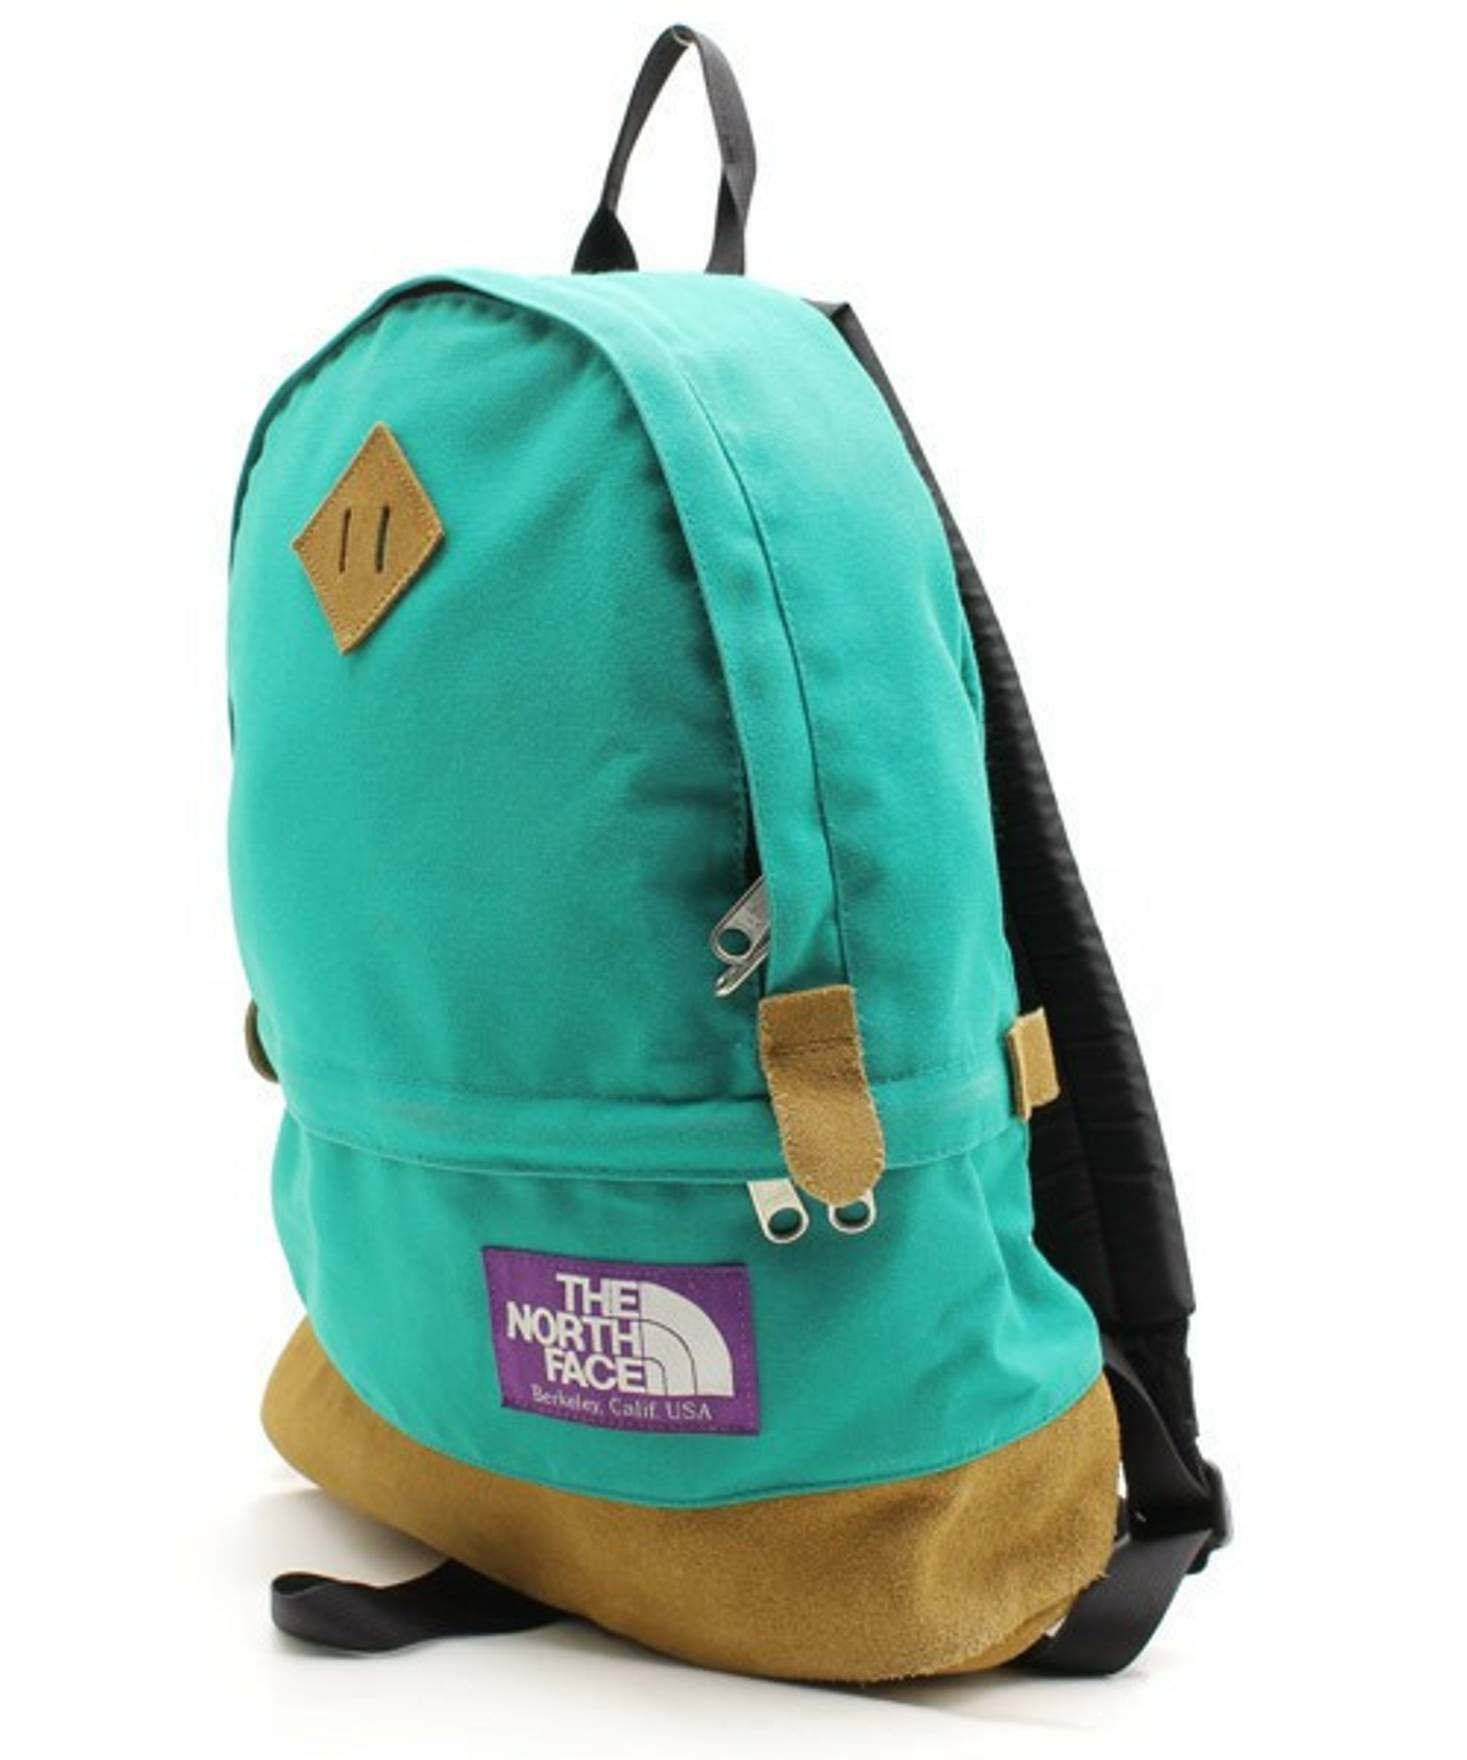 31c8990b9ca Nanamica The North Face Purple Label Backpack daypack bag teal nanamica  Size ONE SIZE - 1